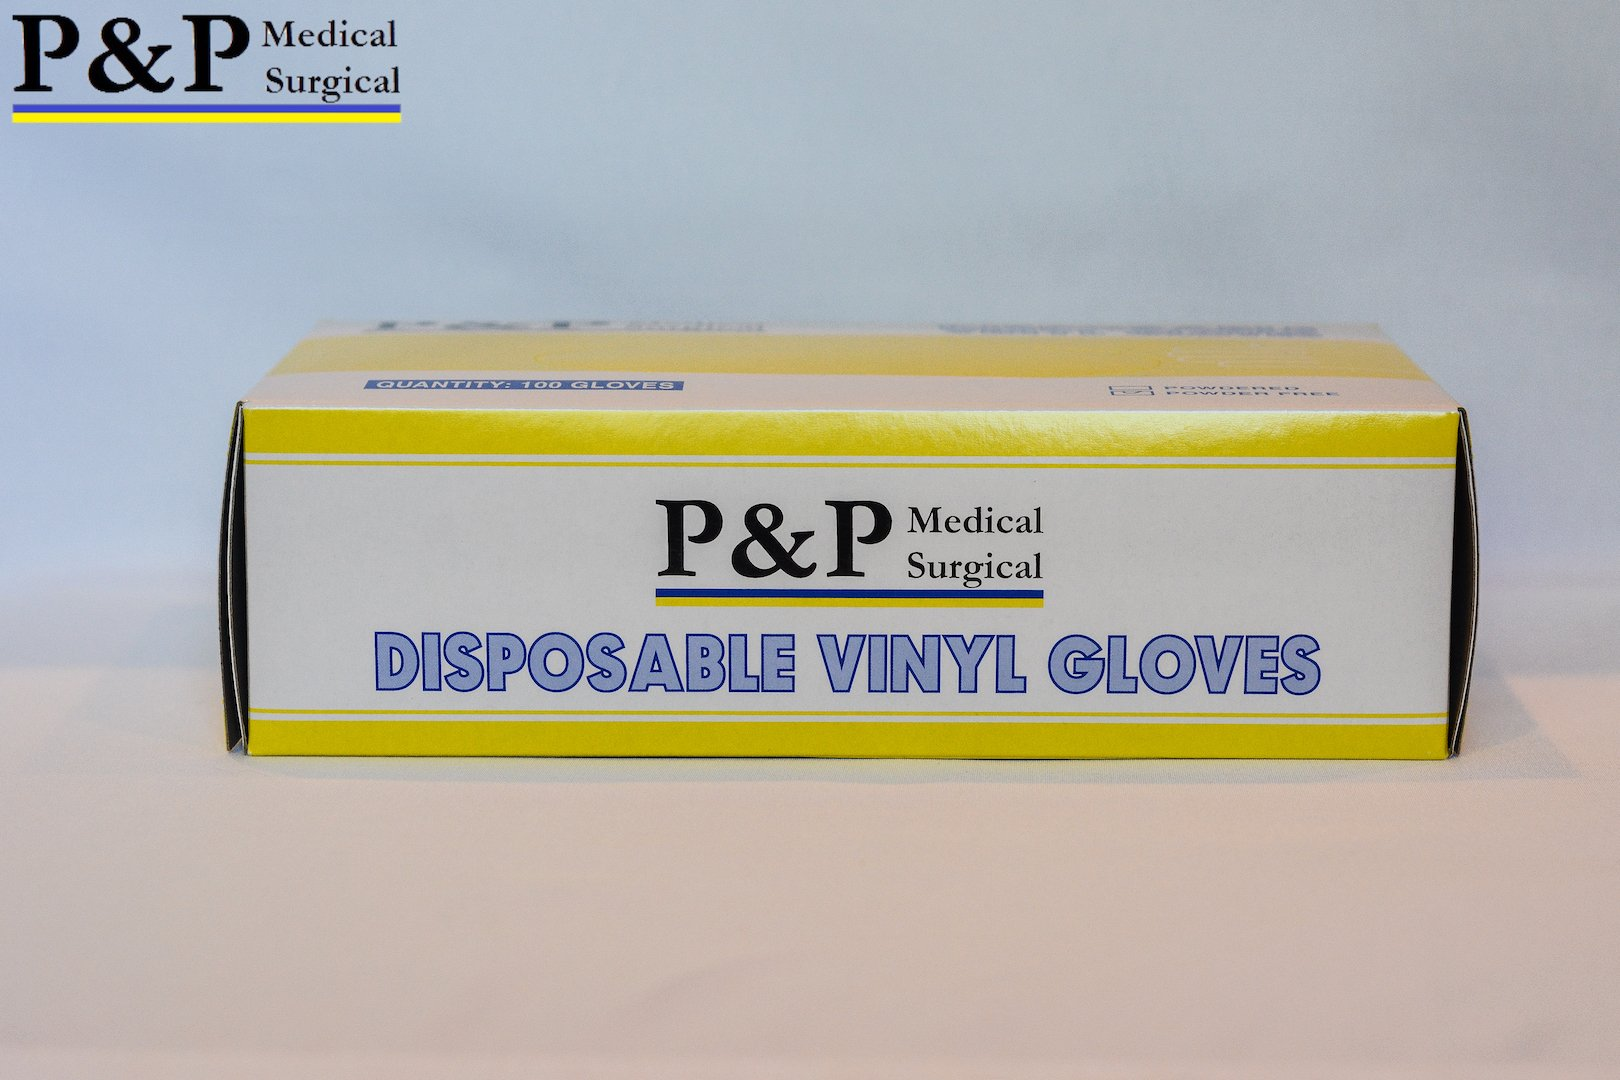 Vinyl Gloves Disposable Medical Exam Powder Latex Free (1 Case= 1000 gloves) X-Large by P&P Medical Surgical (Image #5)